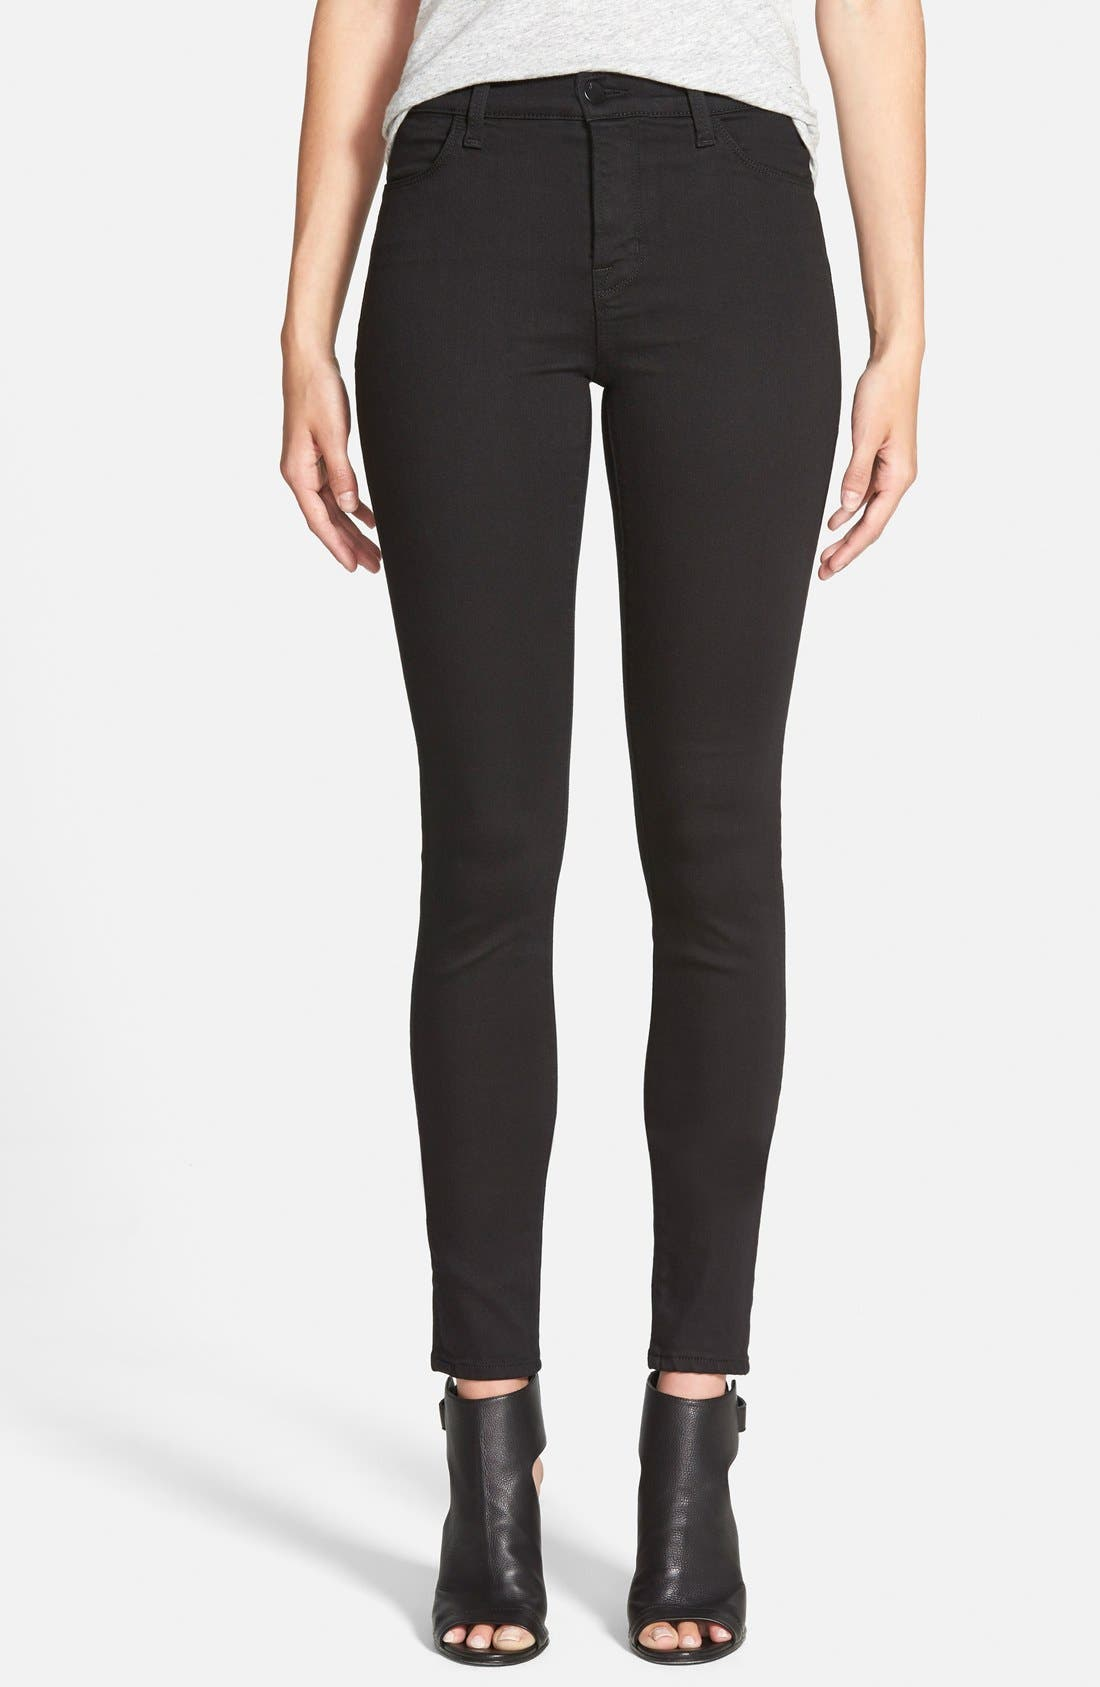 Alternate Image 1 Selected - J Brand Maria High Waist Skinny Jeans (Seriously Black)